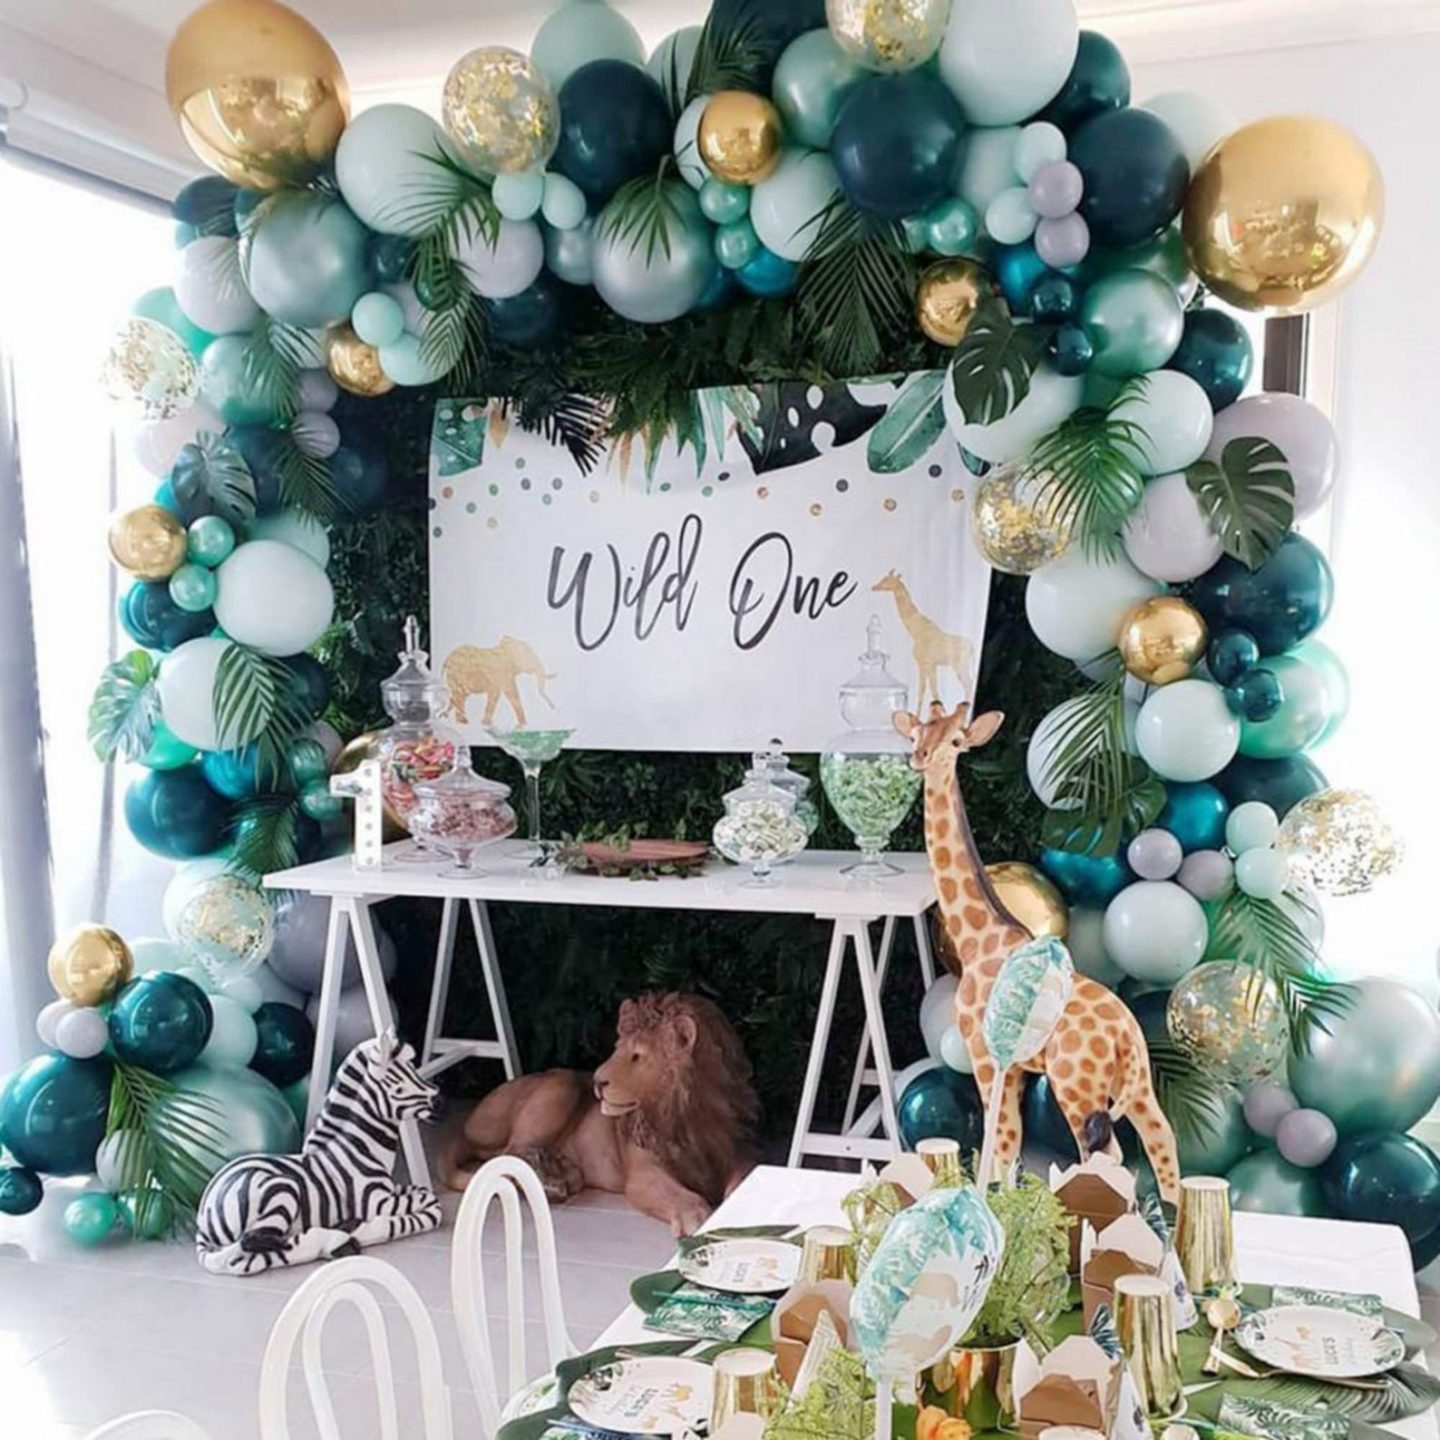 Safari themed birthday party decorations with green balloons